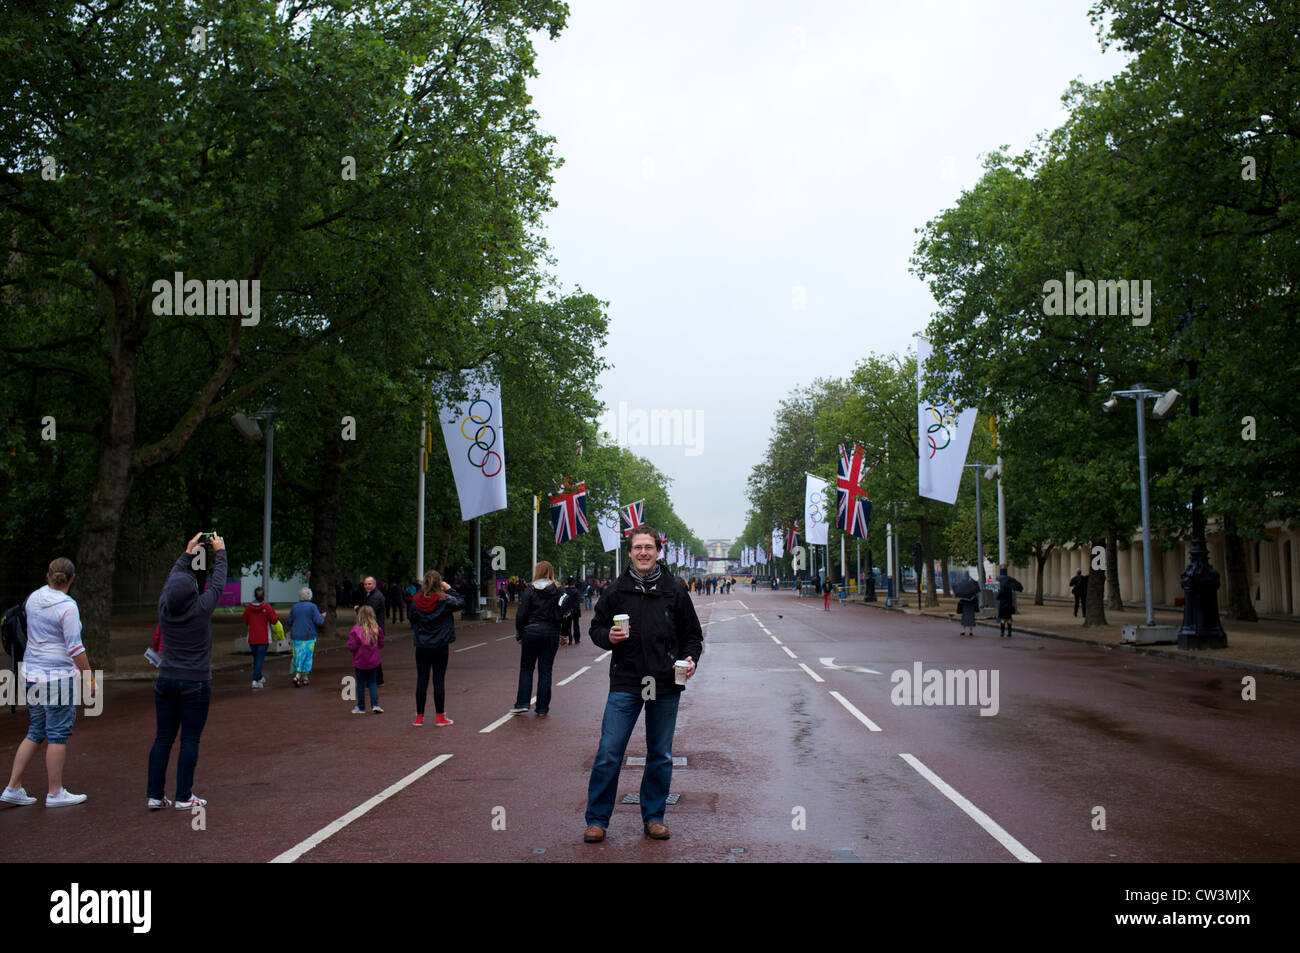 Supporter on wet day at the London Olympics 2012 with Olympic flags - Stock Image